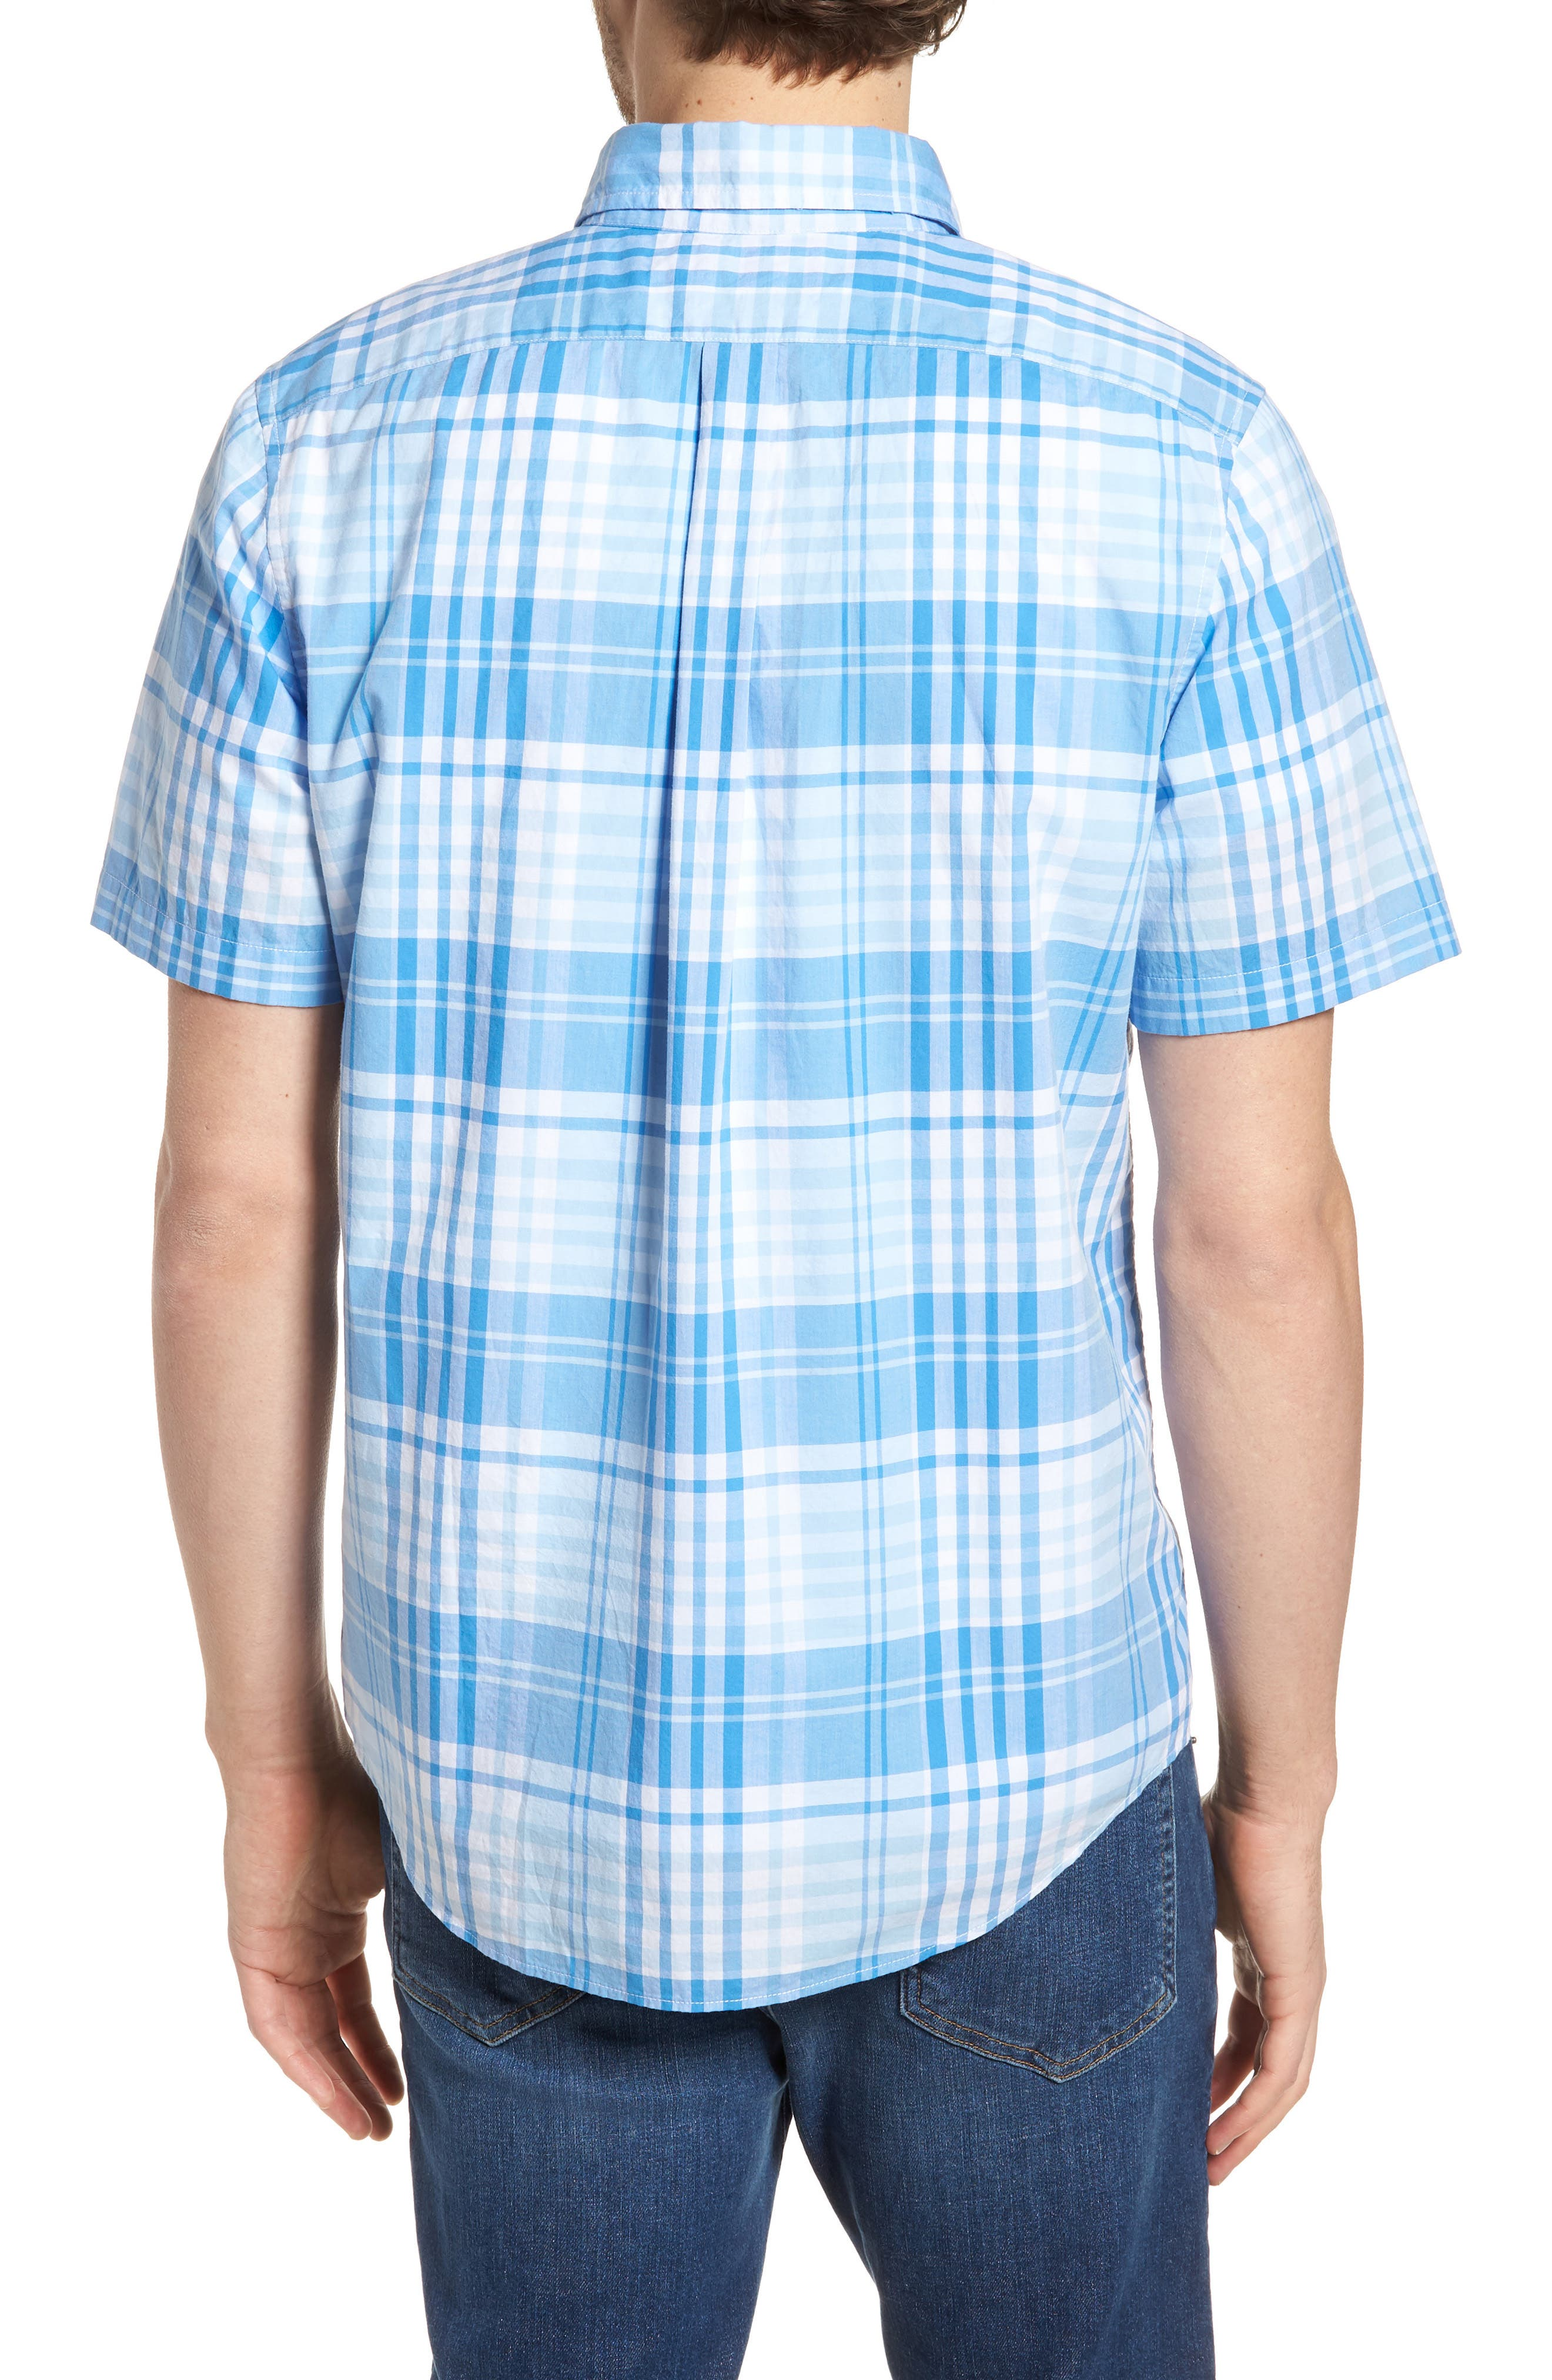 Crawfish Plaid Slim Fit Sport Shirt,                             Alternate thumbnail 2, color,                             Jake Blue